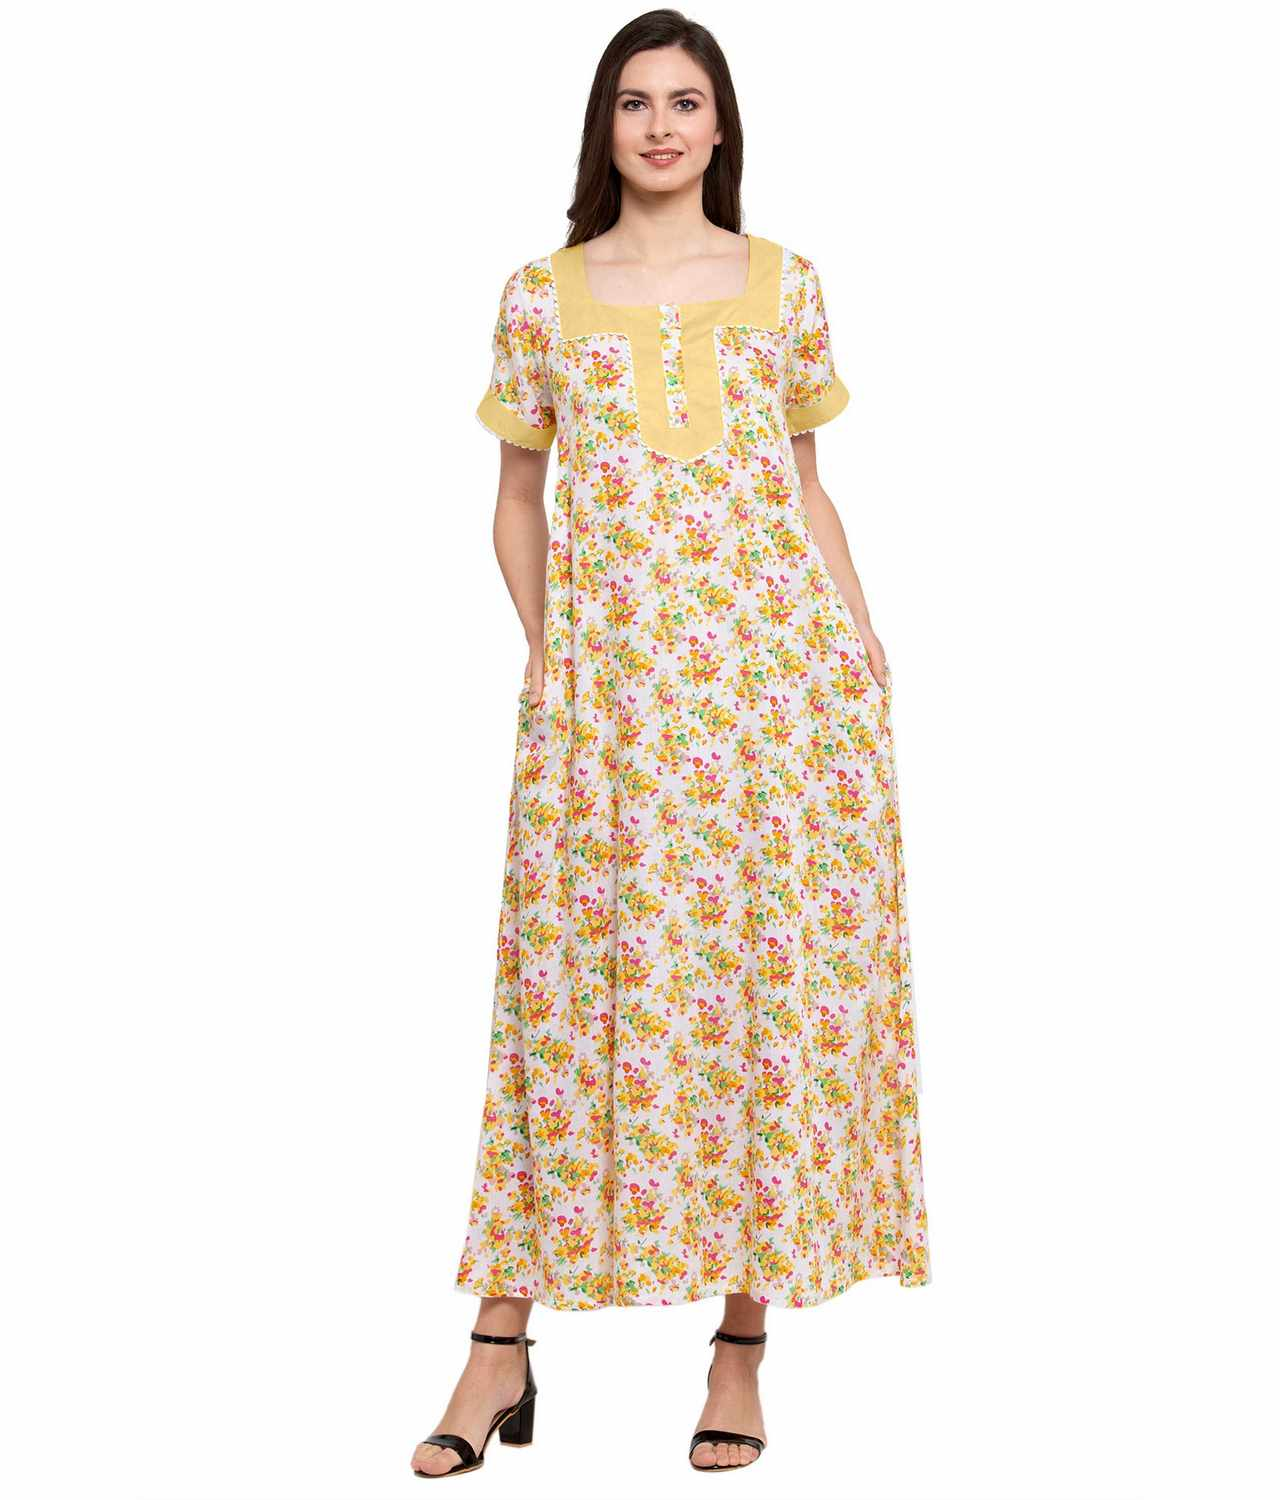 Embellished Square Neck Maxi Night-Gown Nighty in Gold:Yellow Print